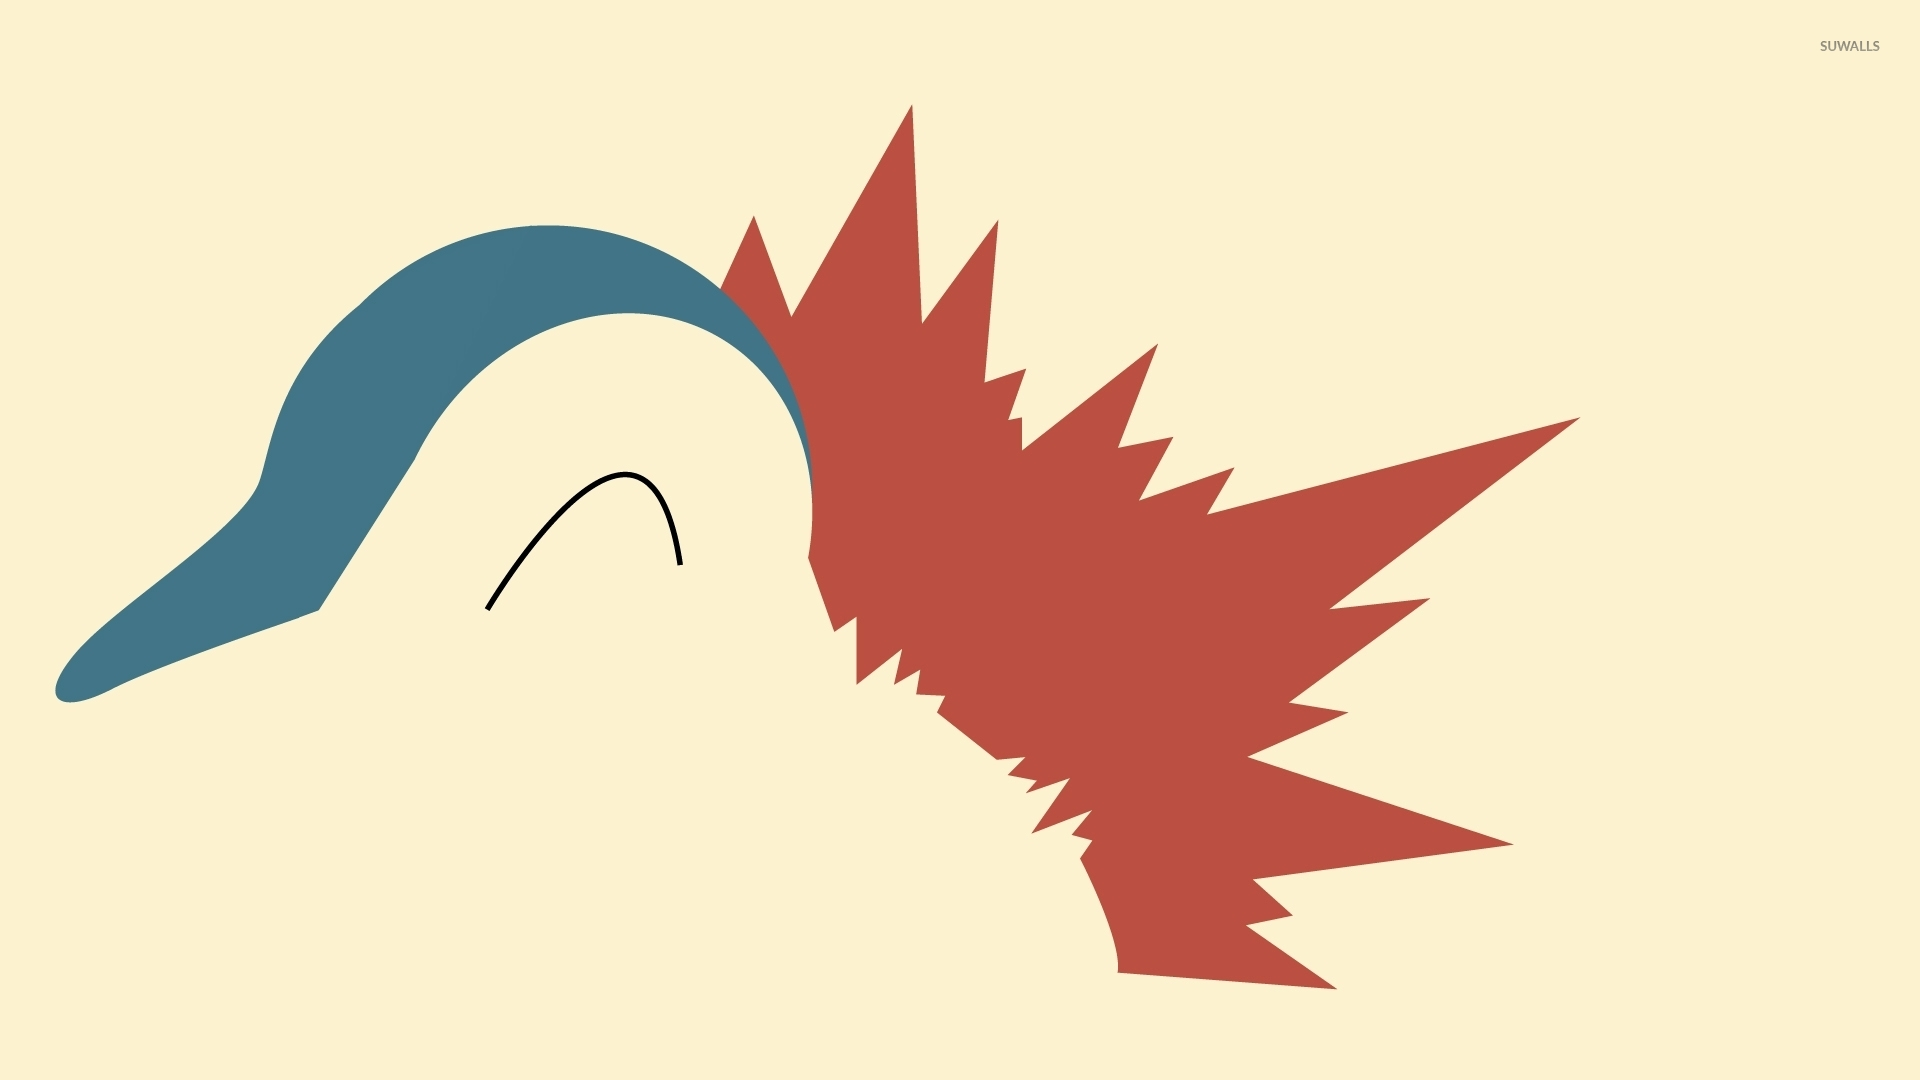 Cyndaquil - Pokemon wallpaper - Game wallpapers - #33251 Cyndaquil Wallpaper